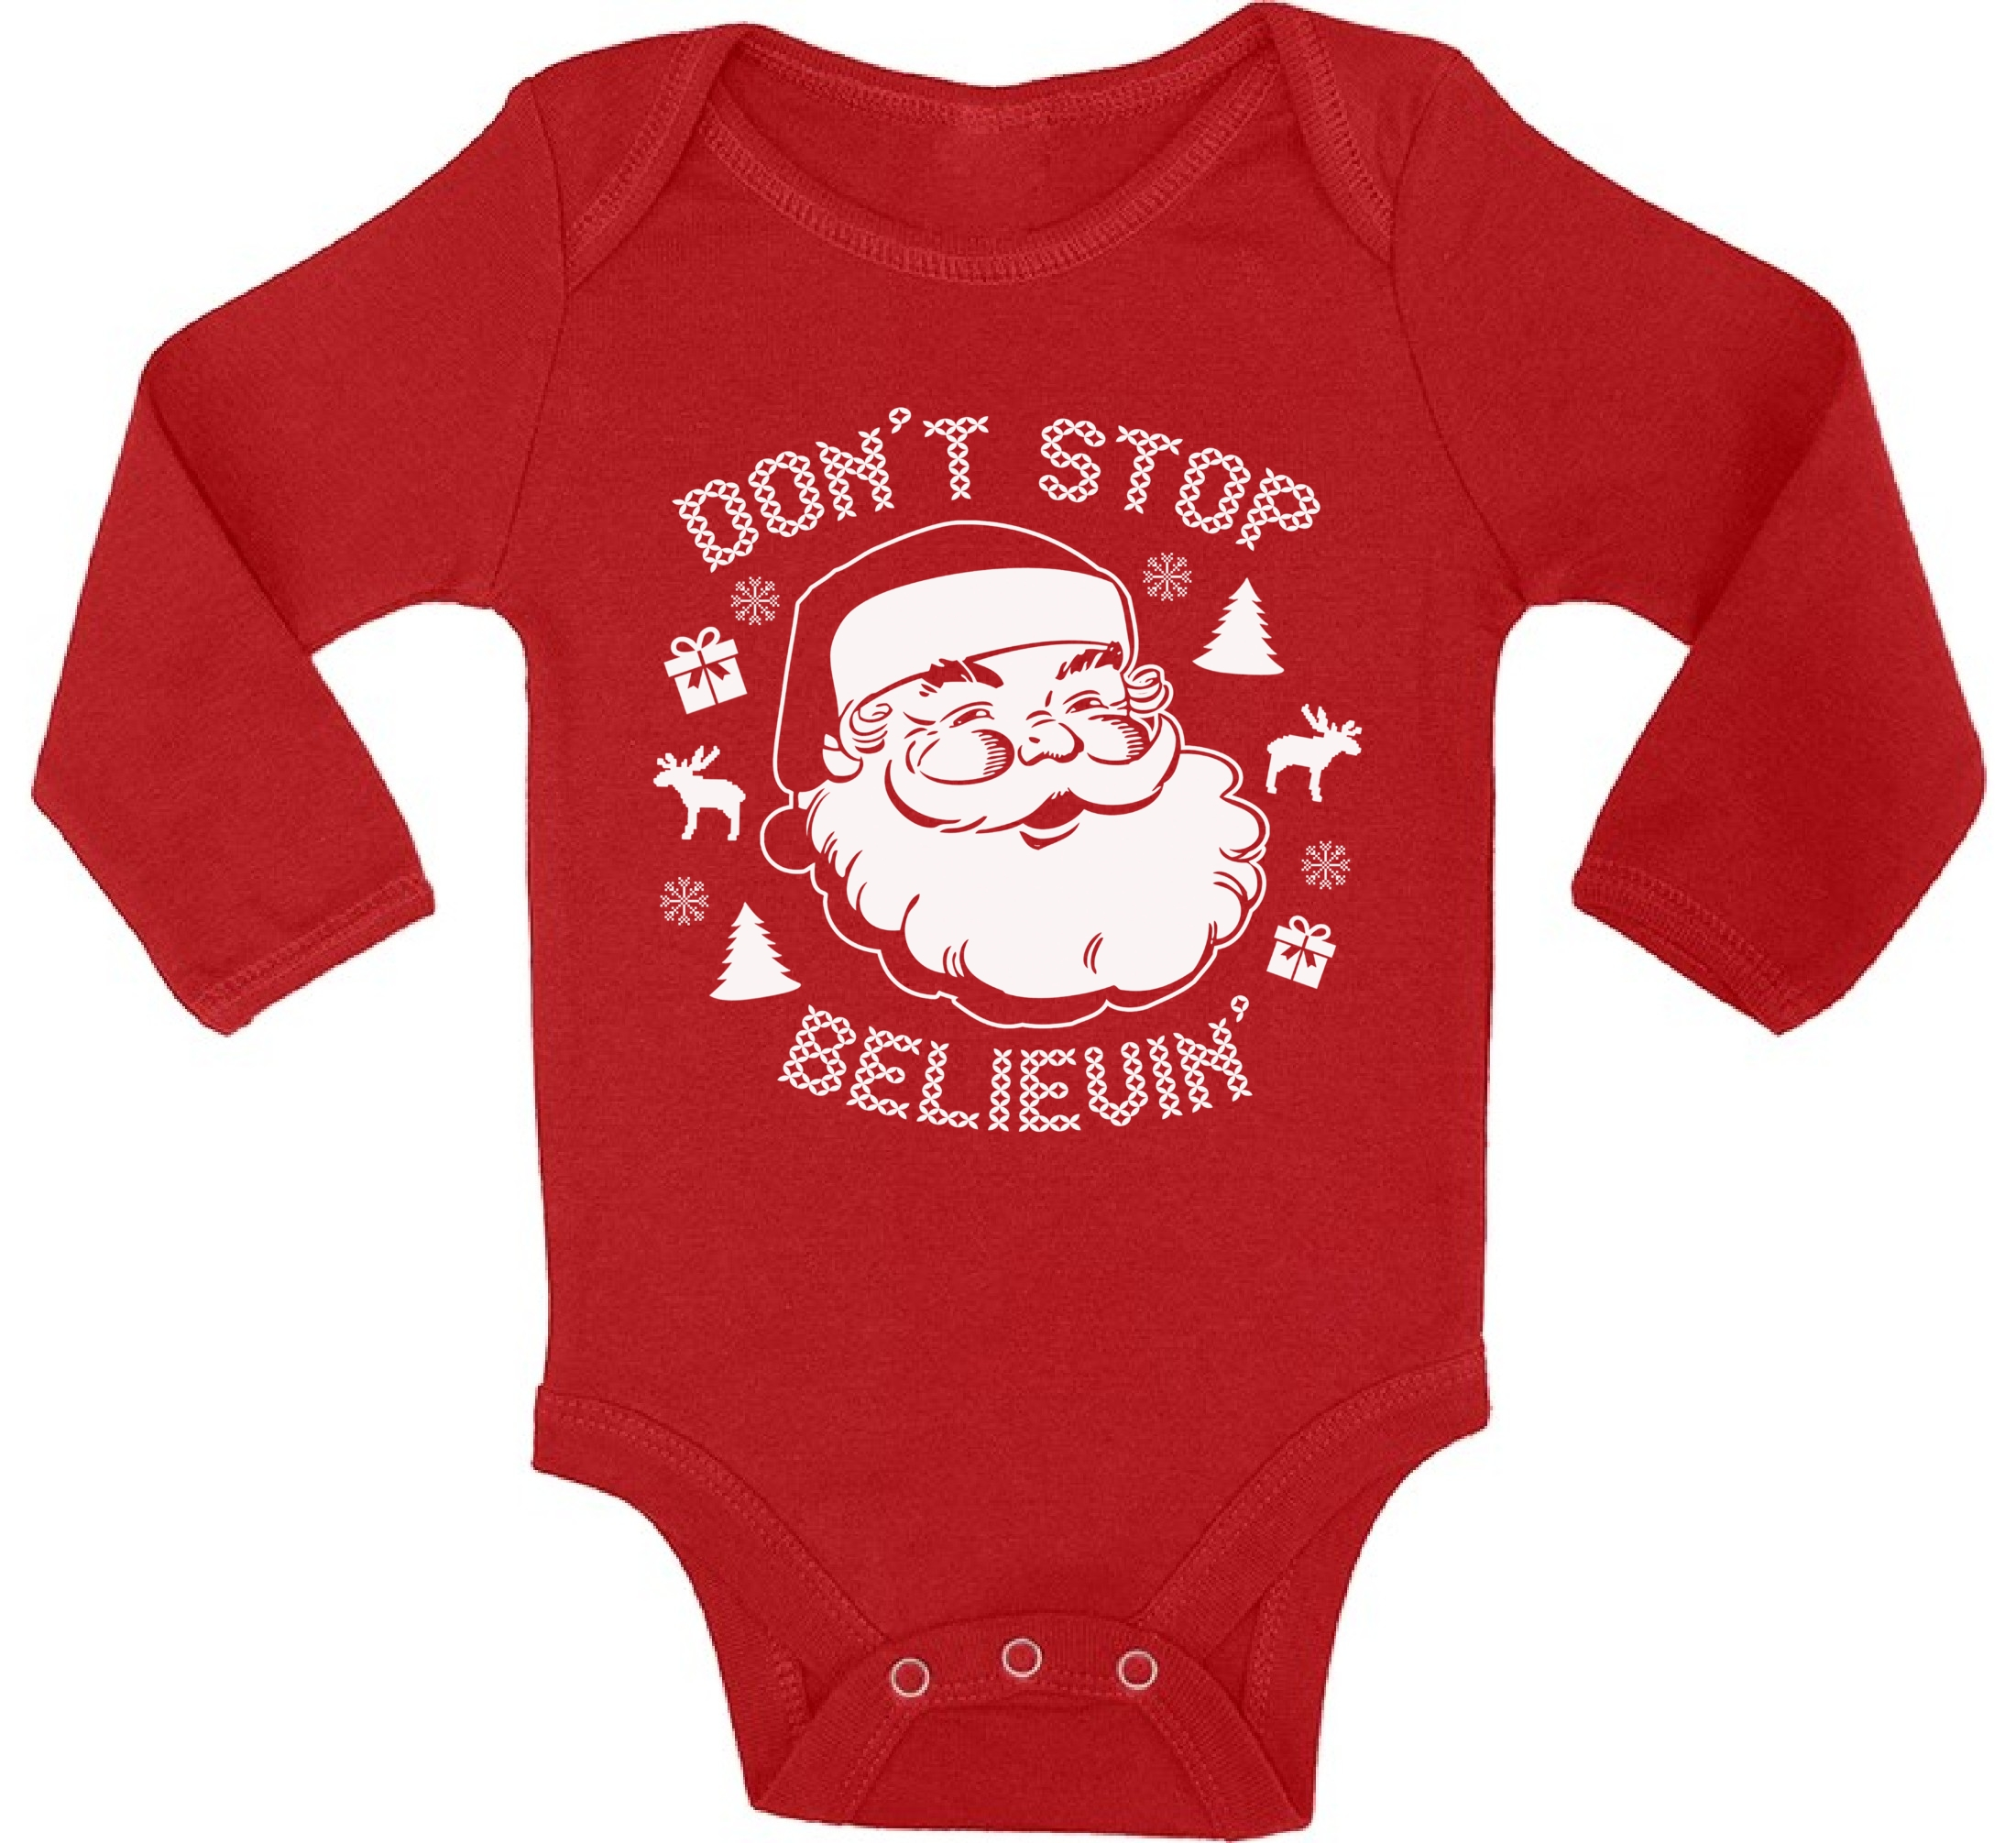 Santa Baby Bodysuits Christmas Bodysuit Baby Christmas Gifts Don\'t ...